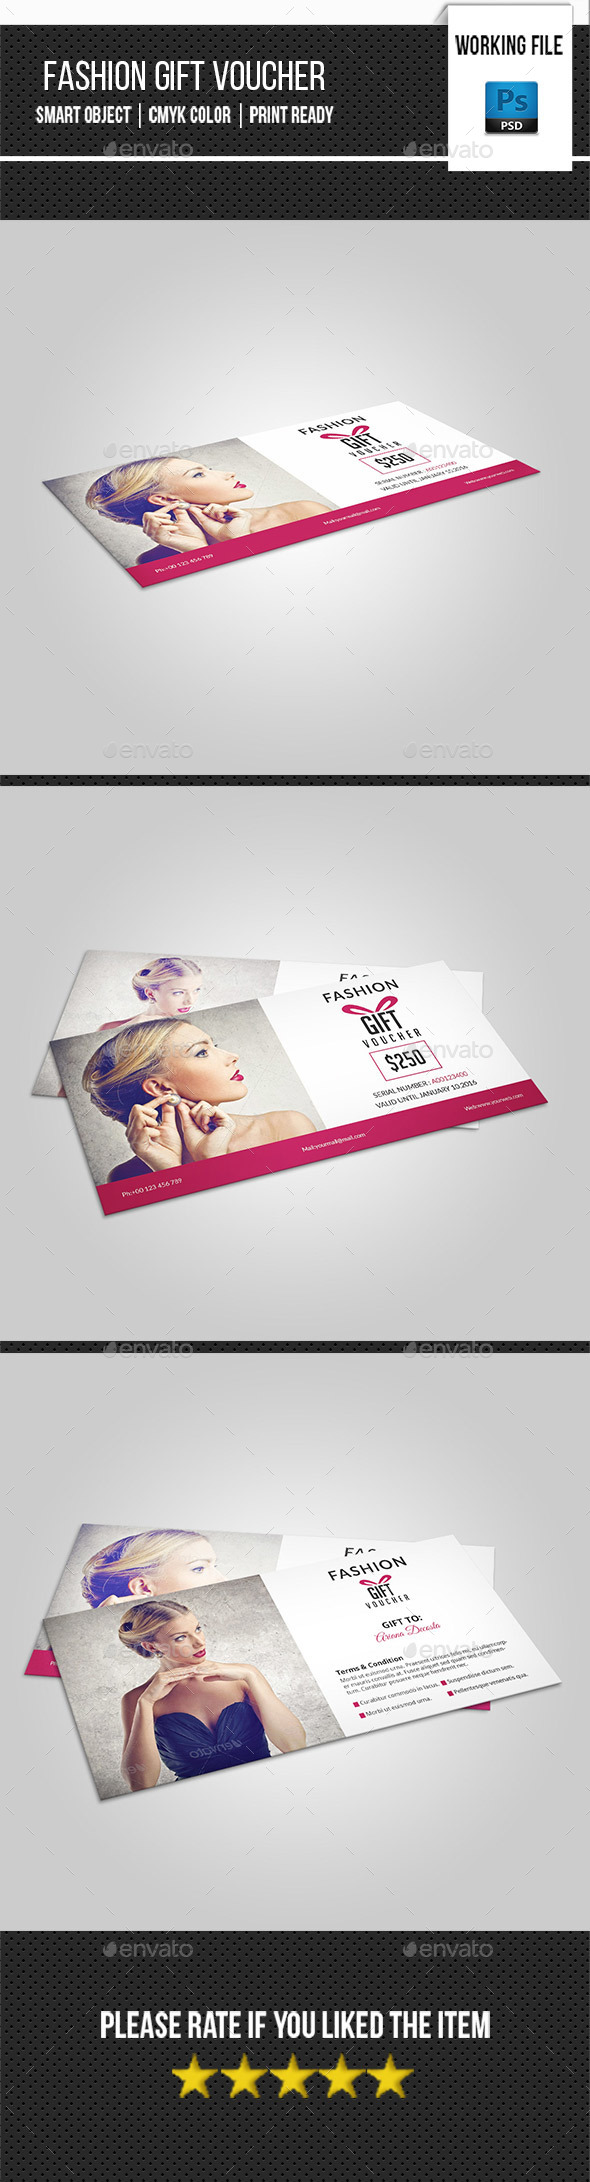 Fashion Gift Voucher Template-V01 - Loyalty Cards Cards & Invites